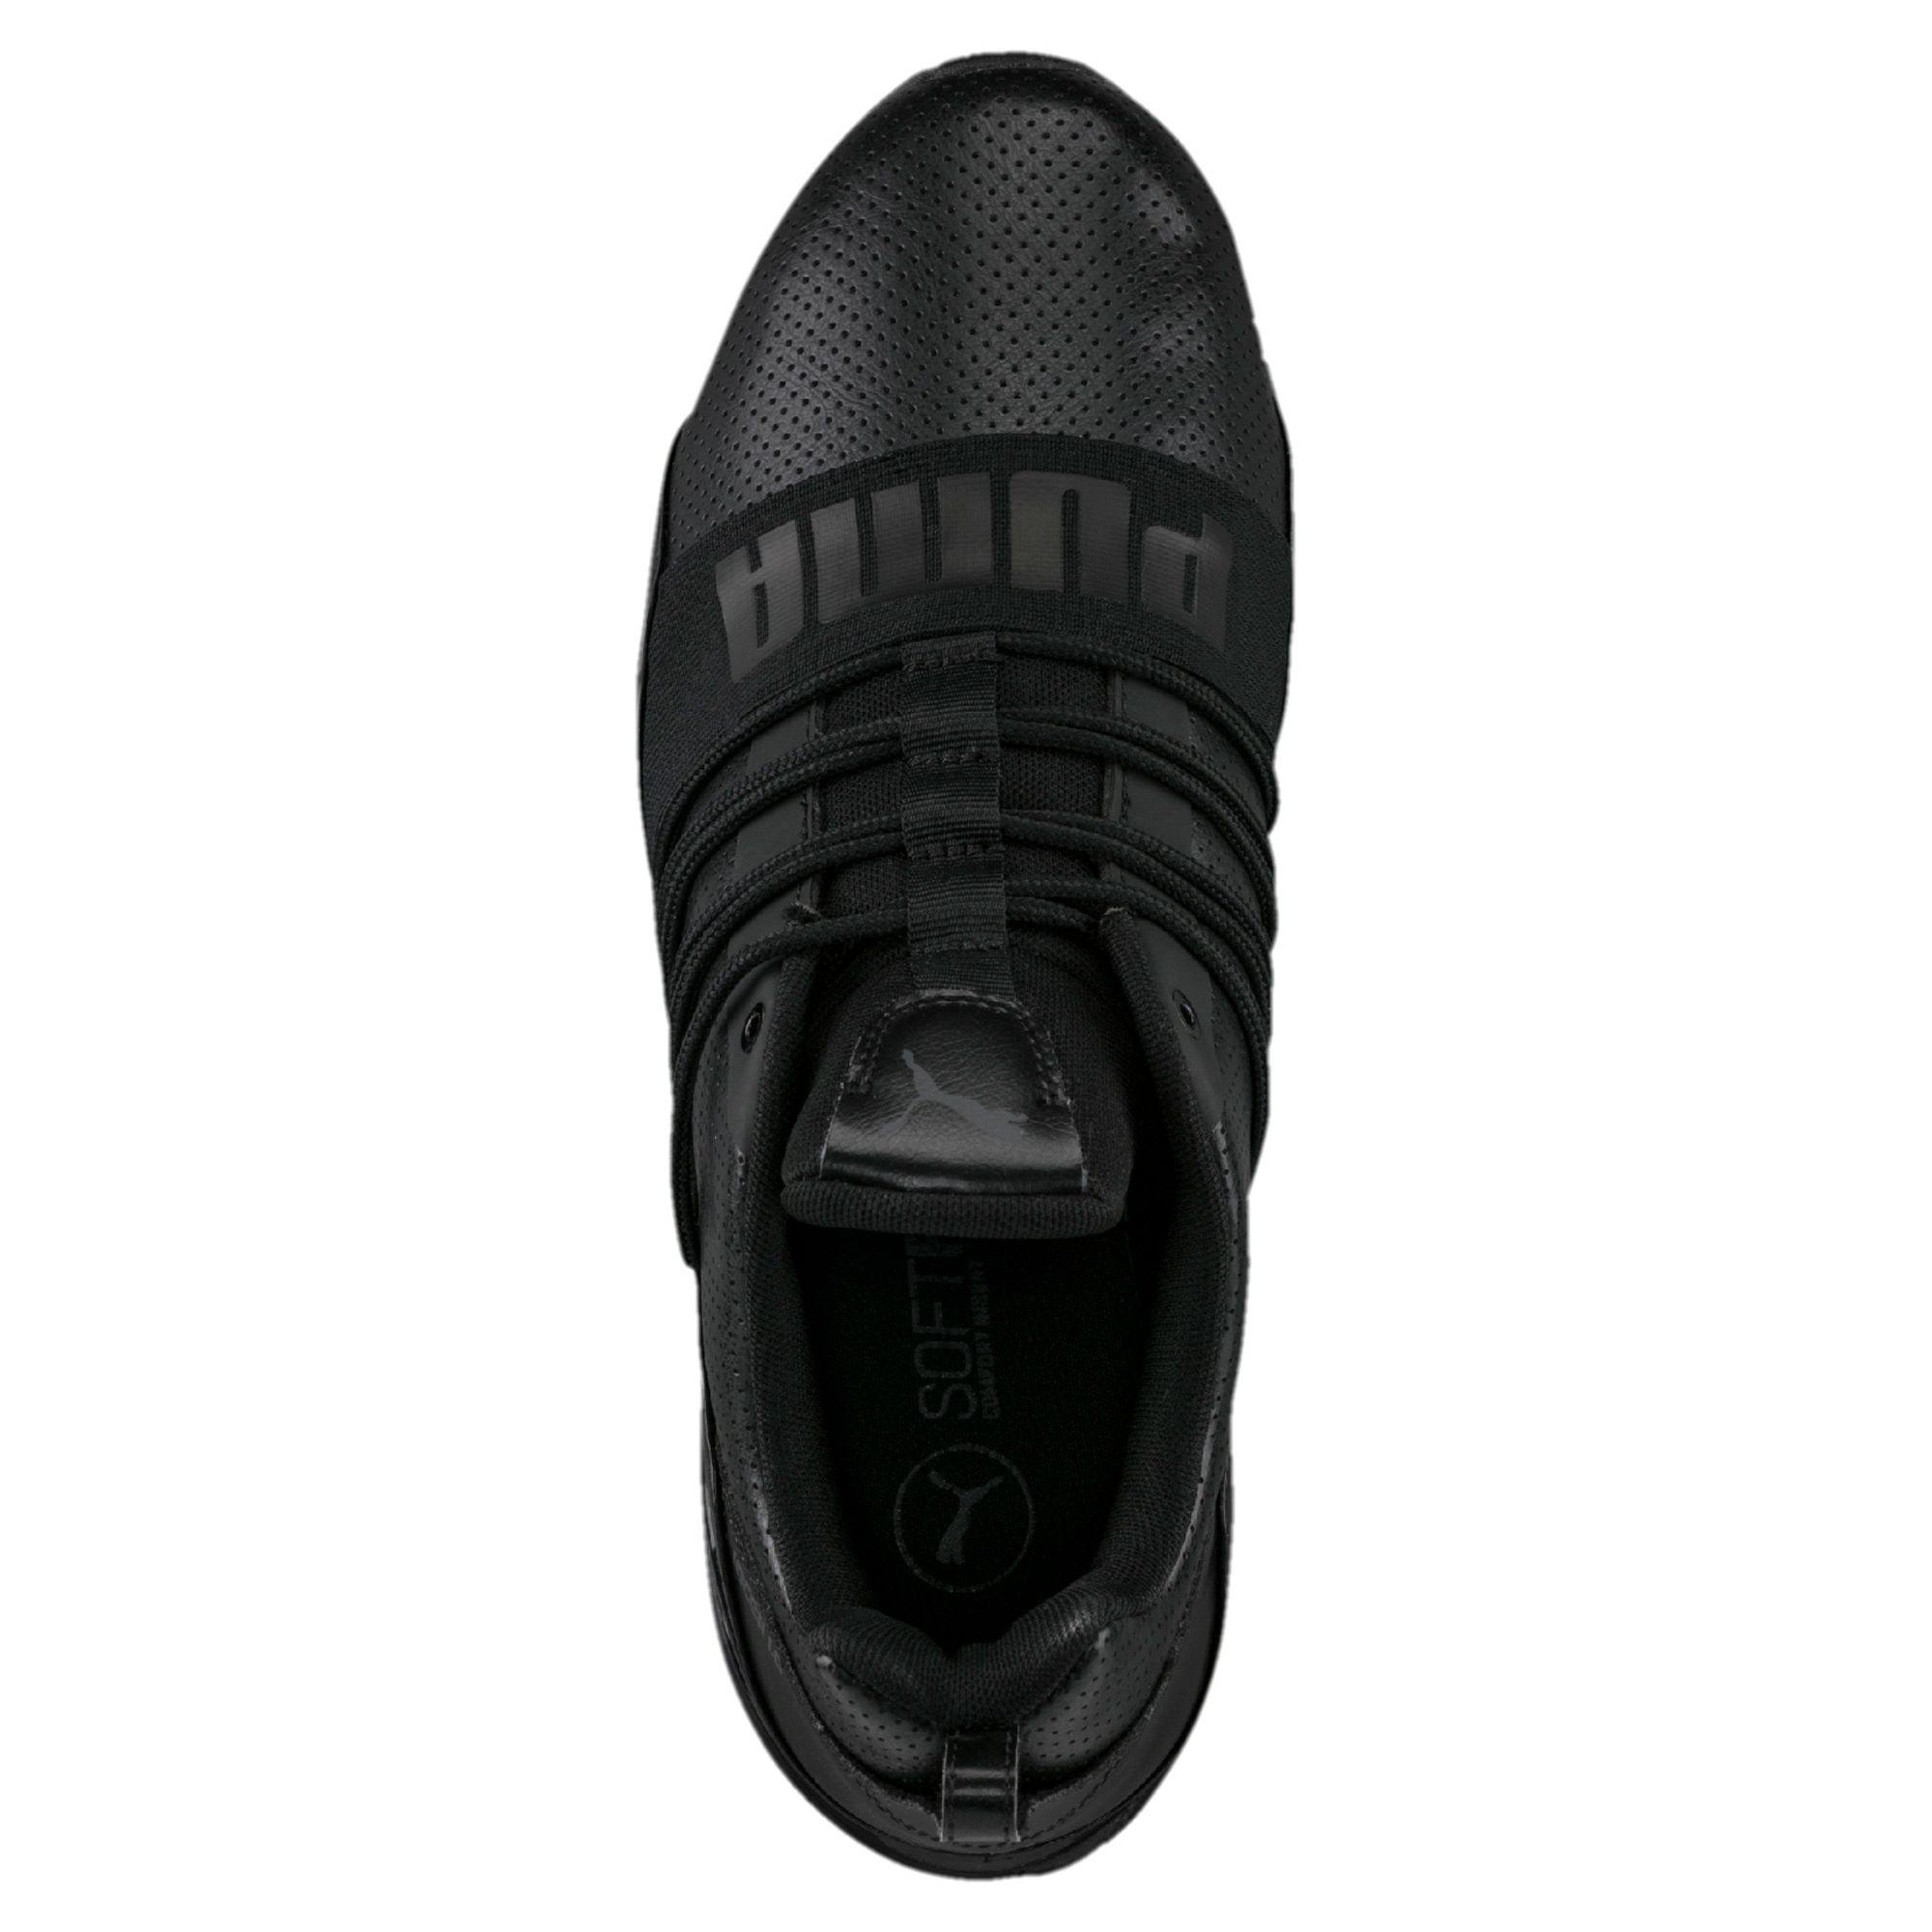 Lyst - PUMA Cell Pro Limit Men s Running Shoes in Black for Men 23759a186